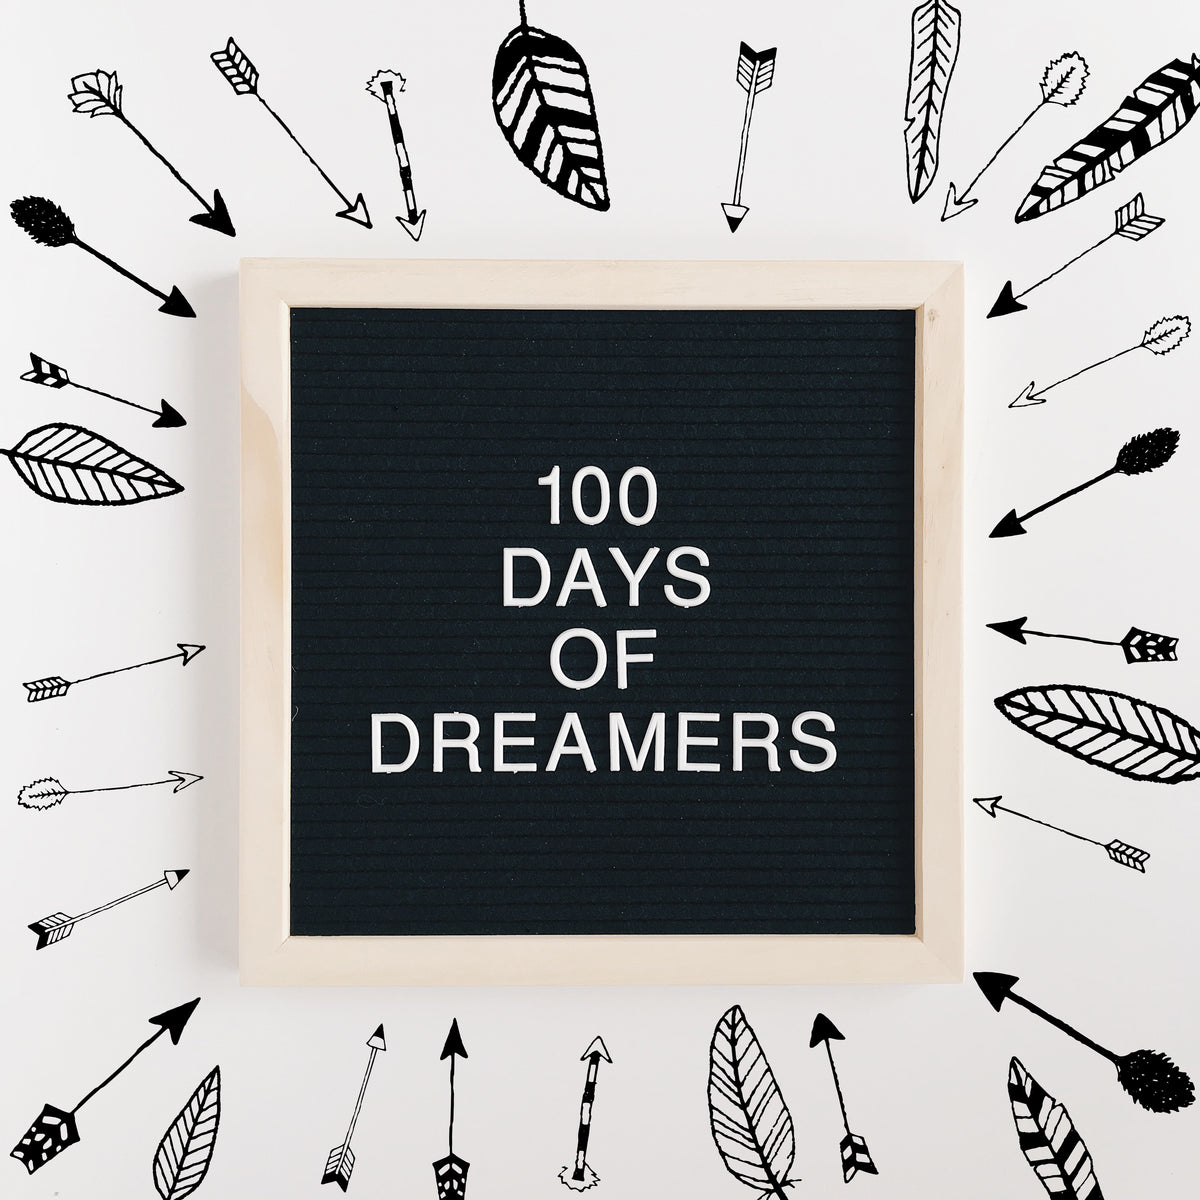 100 Days of Dreamers